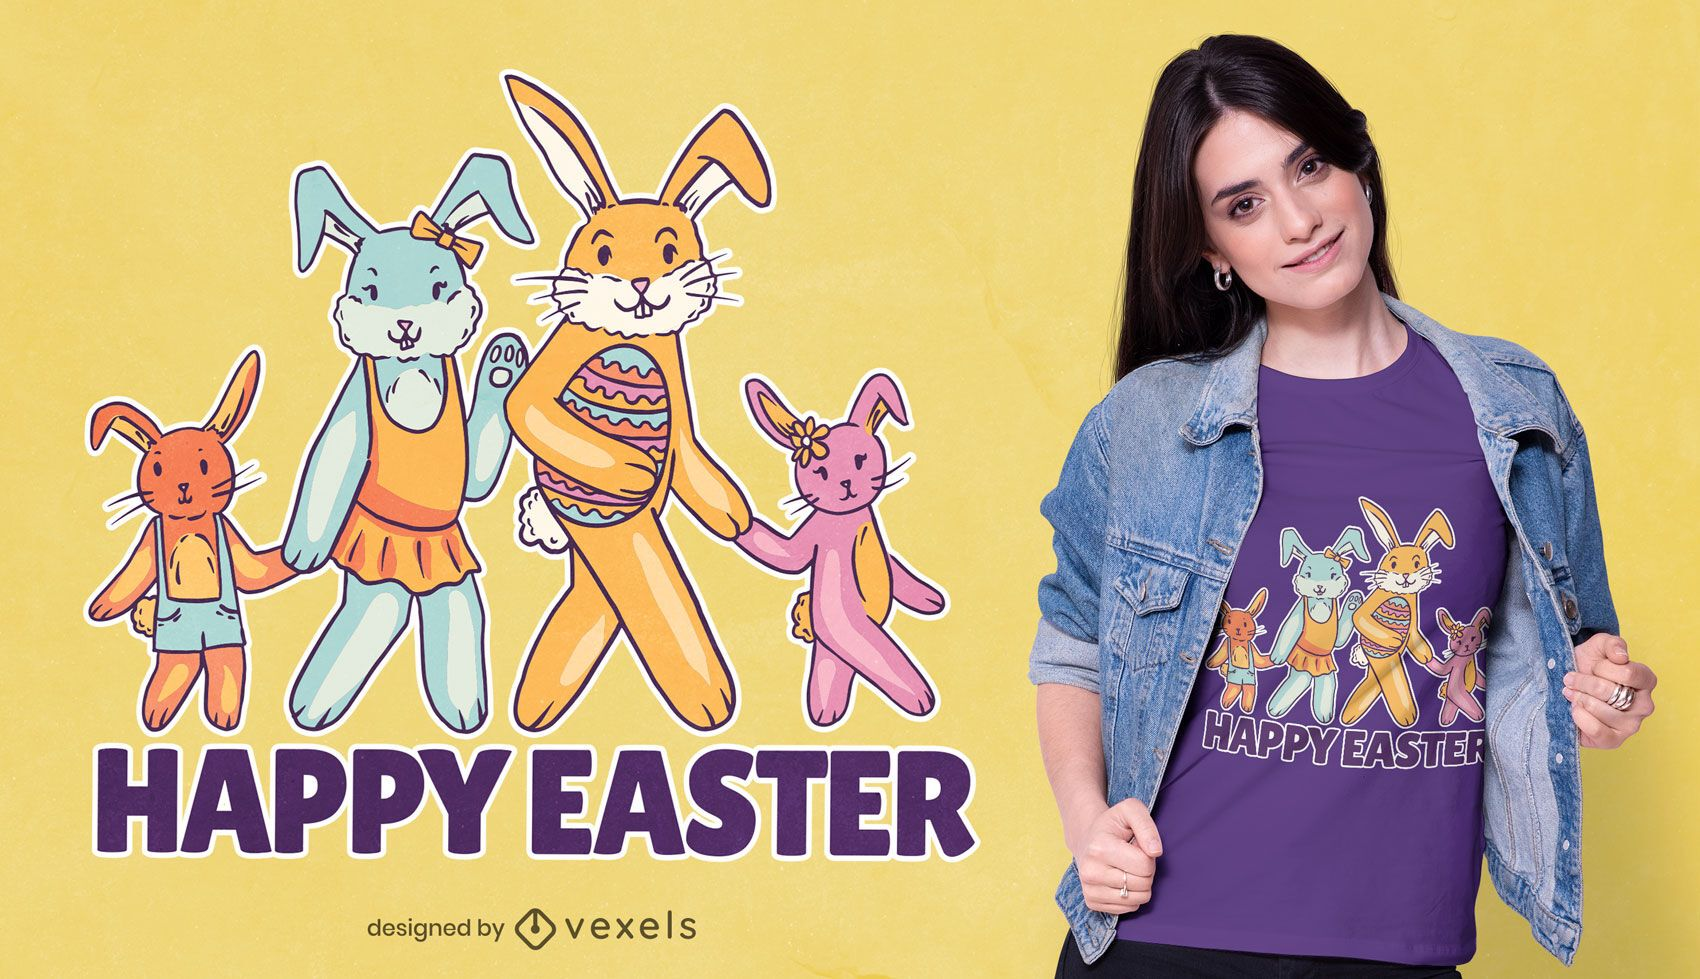 Happy easter bunny family t-shirt design